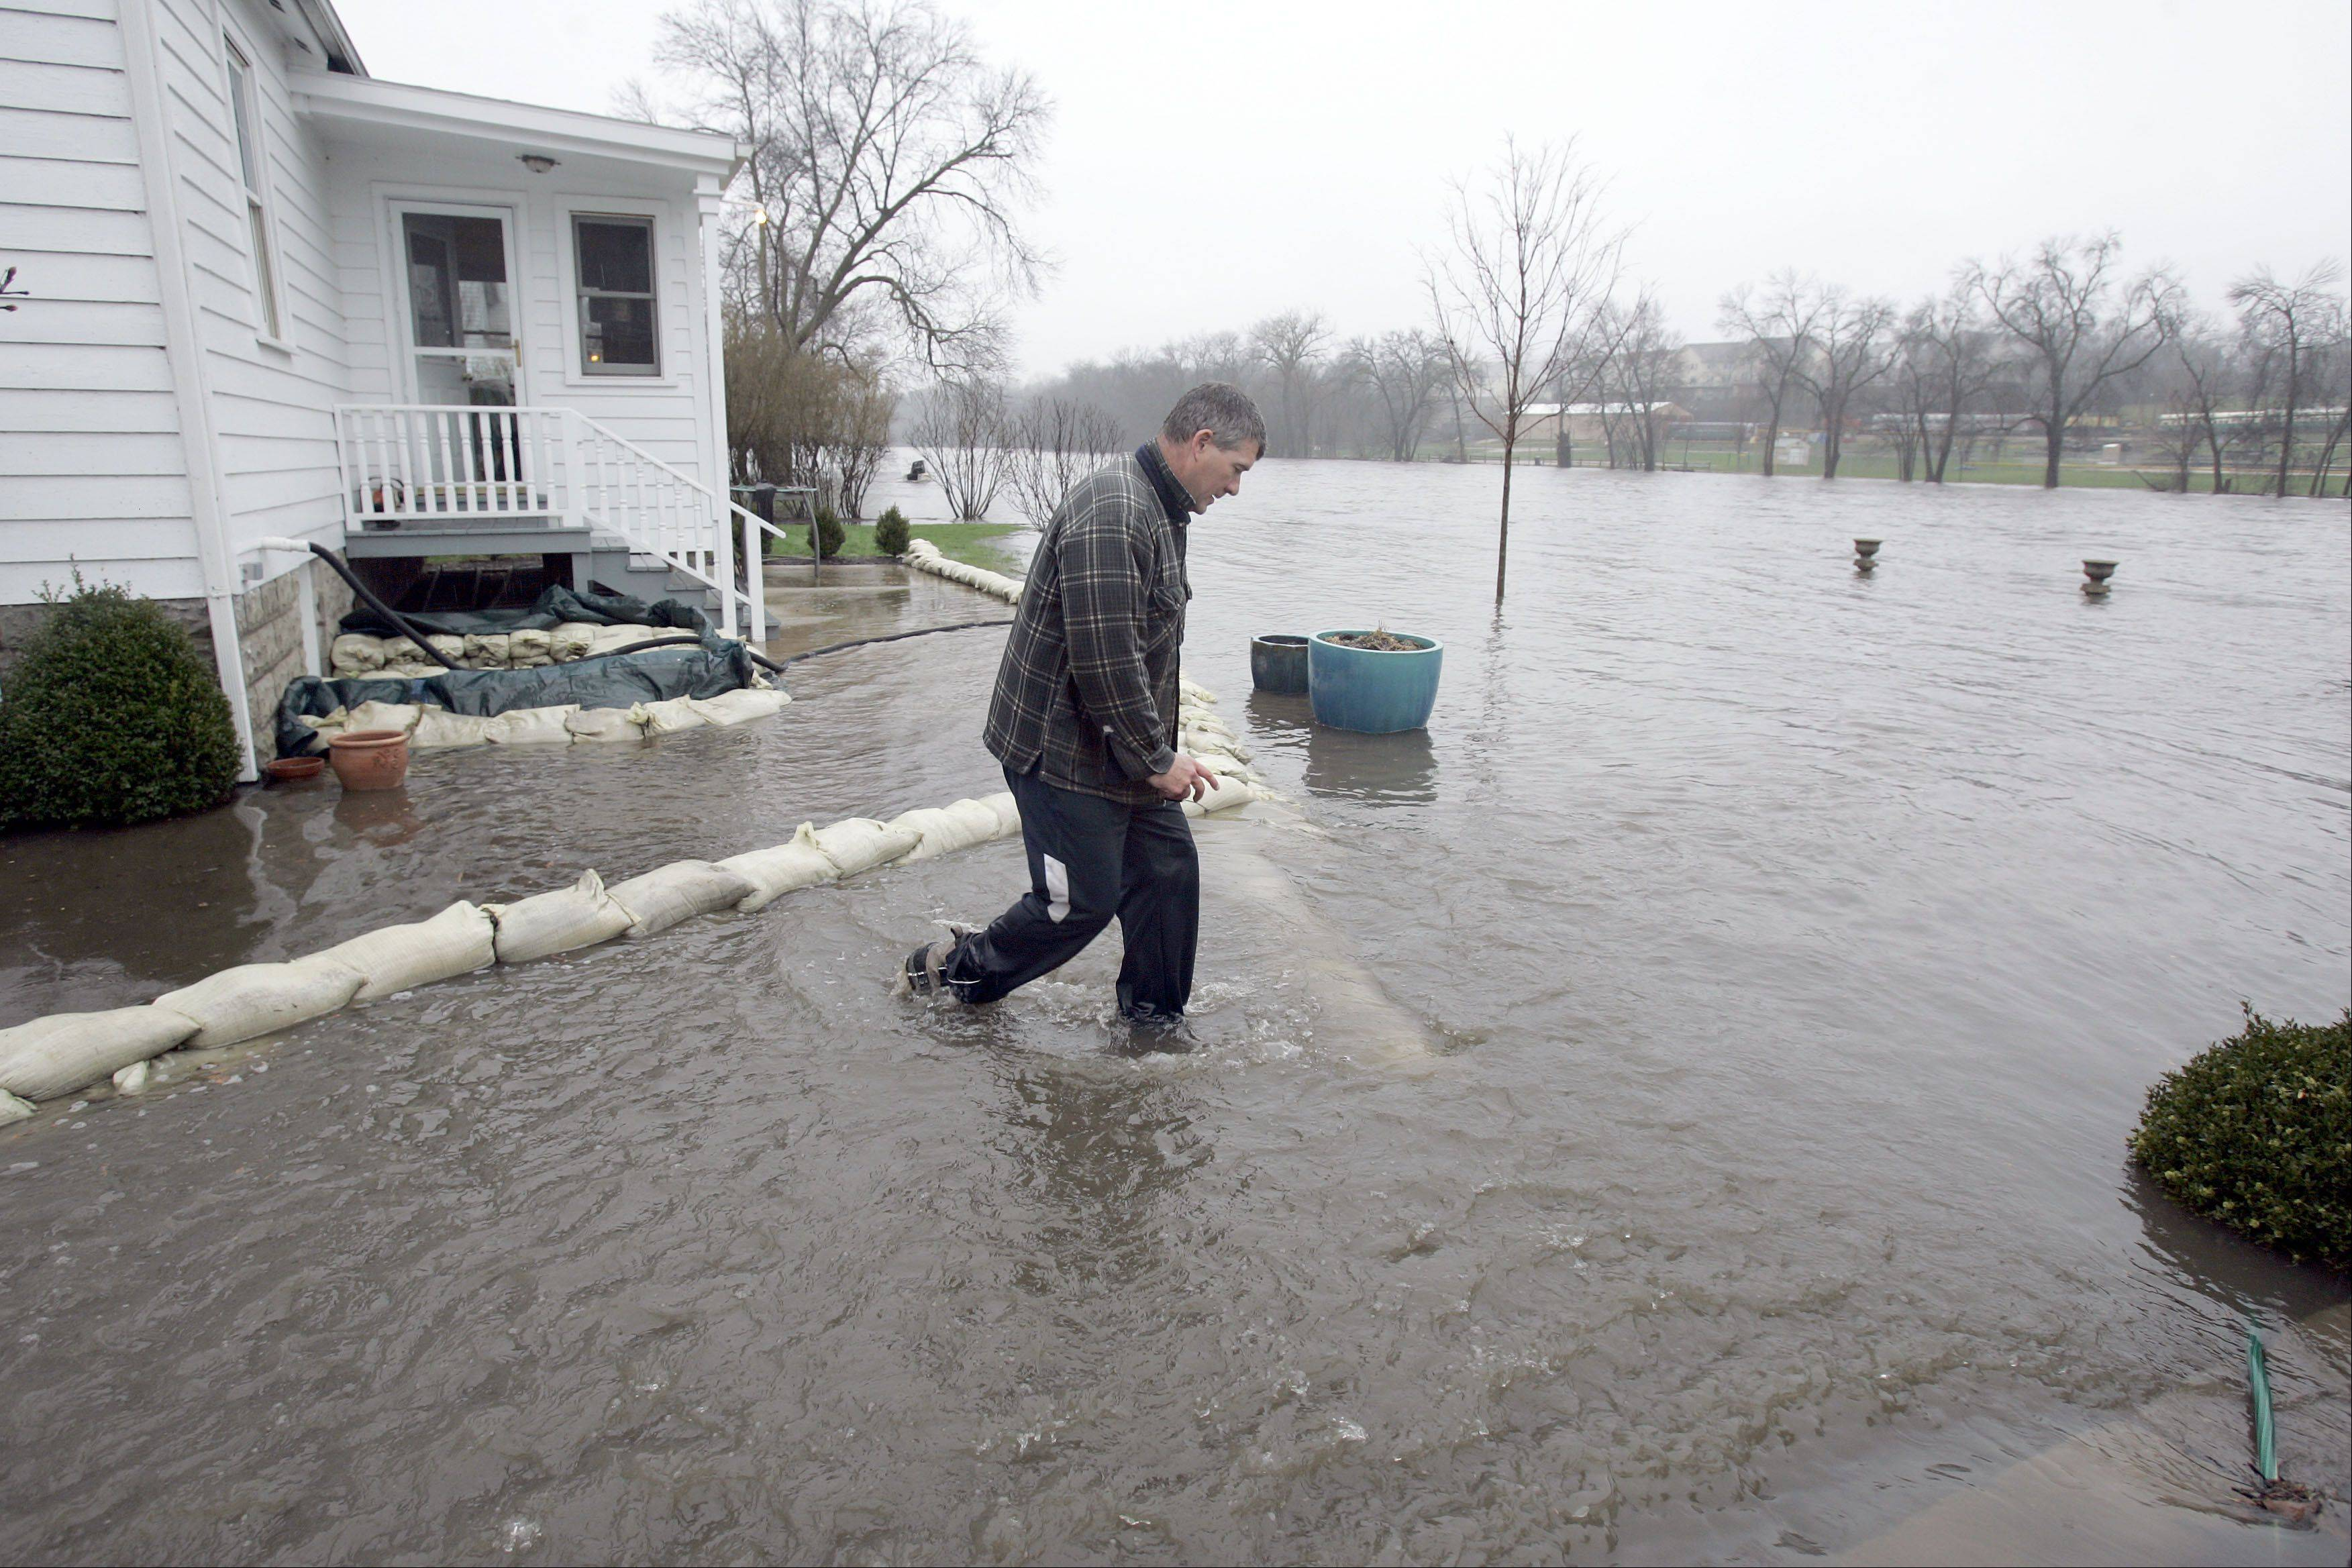 "Paul Gogo of South Elgin returns for another sandbag after flooding on the Fox River Thursday in South Elgin. ""This is just brutal. It's never been like this,"" said Gogo, who had been up since 3 a.m. working to protect his home."